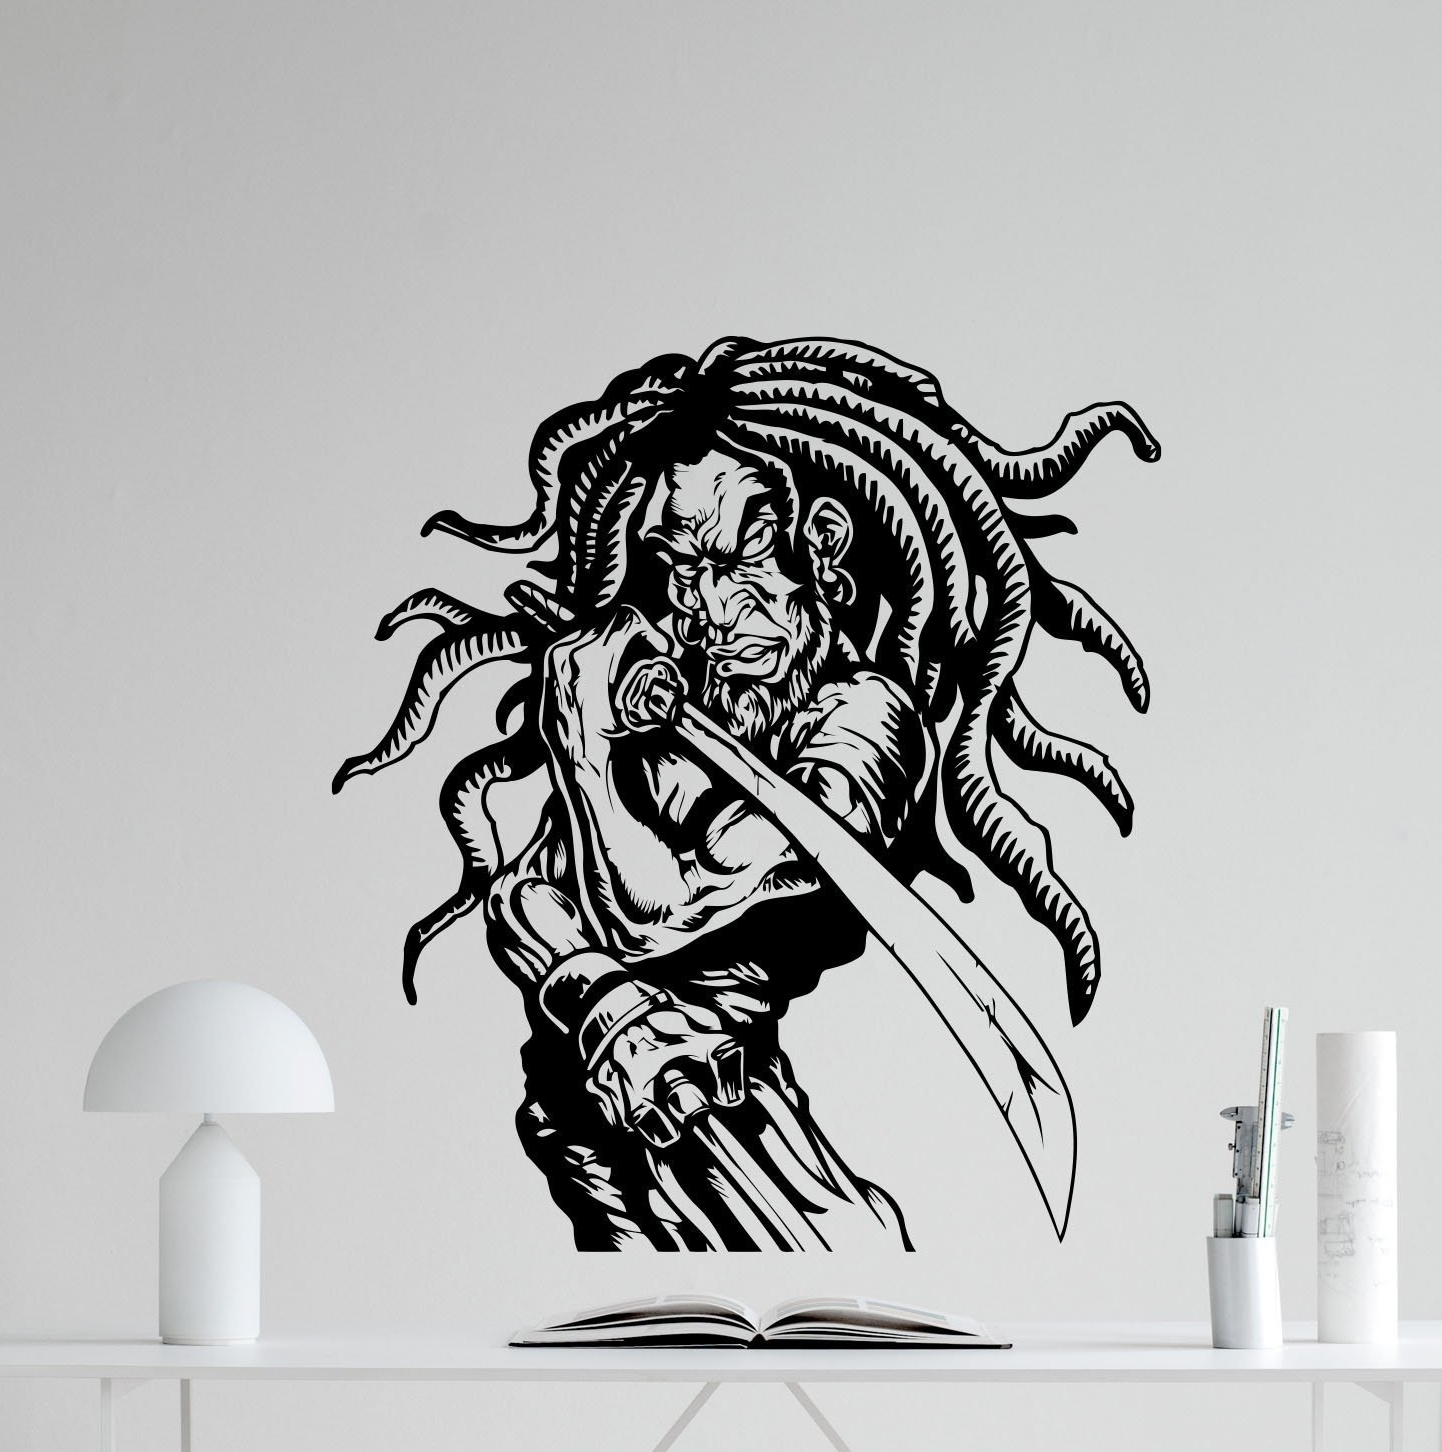 Recent Amazon: Rasta Samurai Wall Decal Rastaman Sword Ninja Warrior Intended For Samurai Wall Art (Gallery 8 of 15)